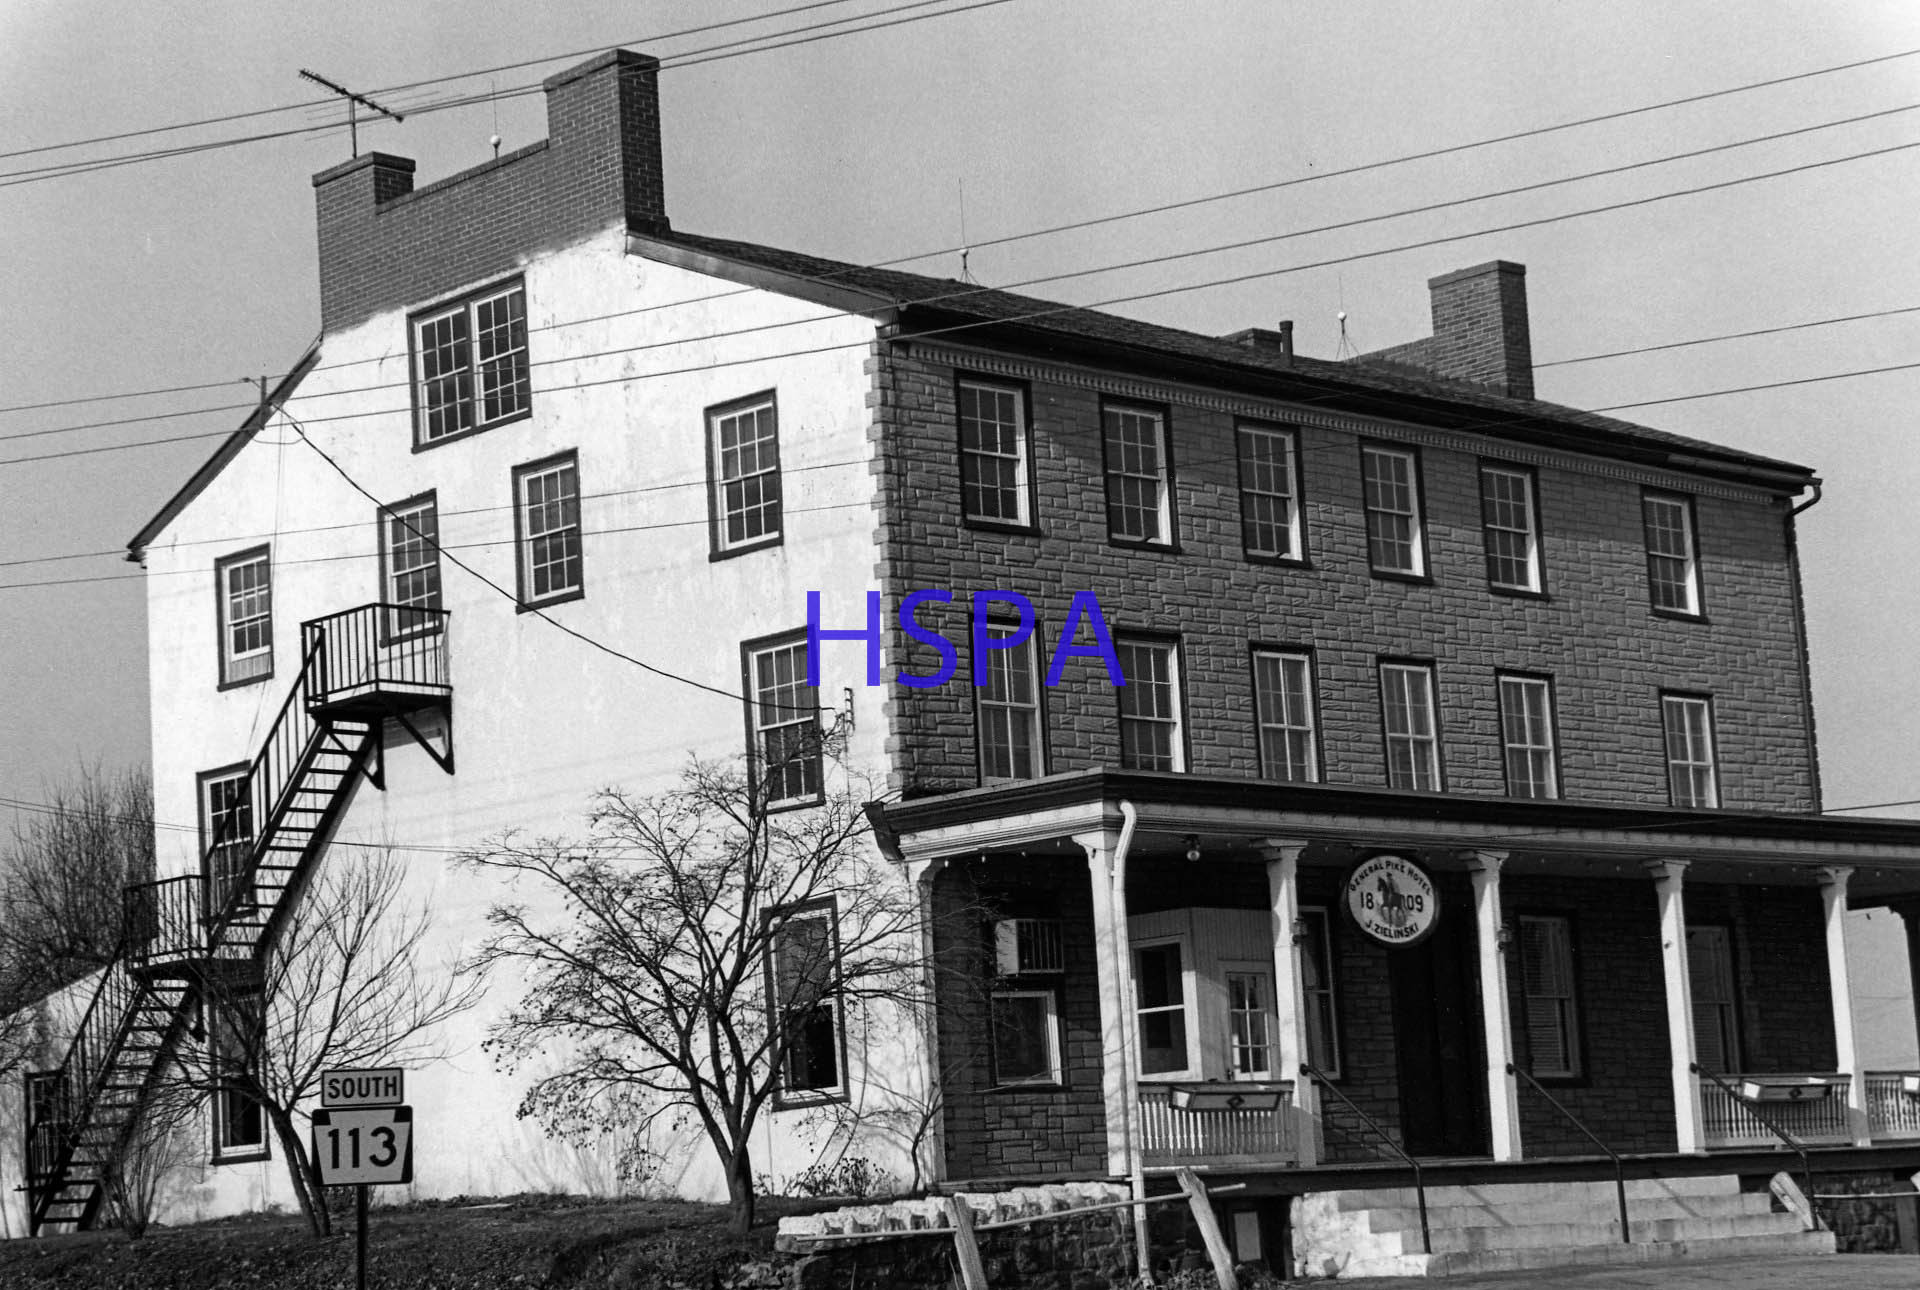 The General Pike Hotel Shown Above Was Demolition In 1994 Inn Built 1808 By John Morgan Honor Of Zubulon Montgomery